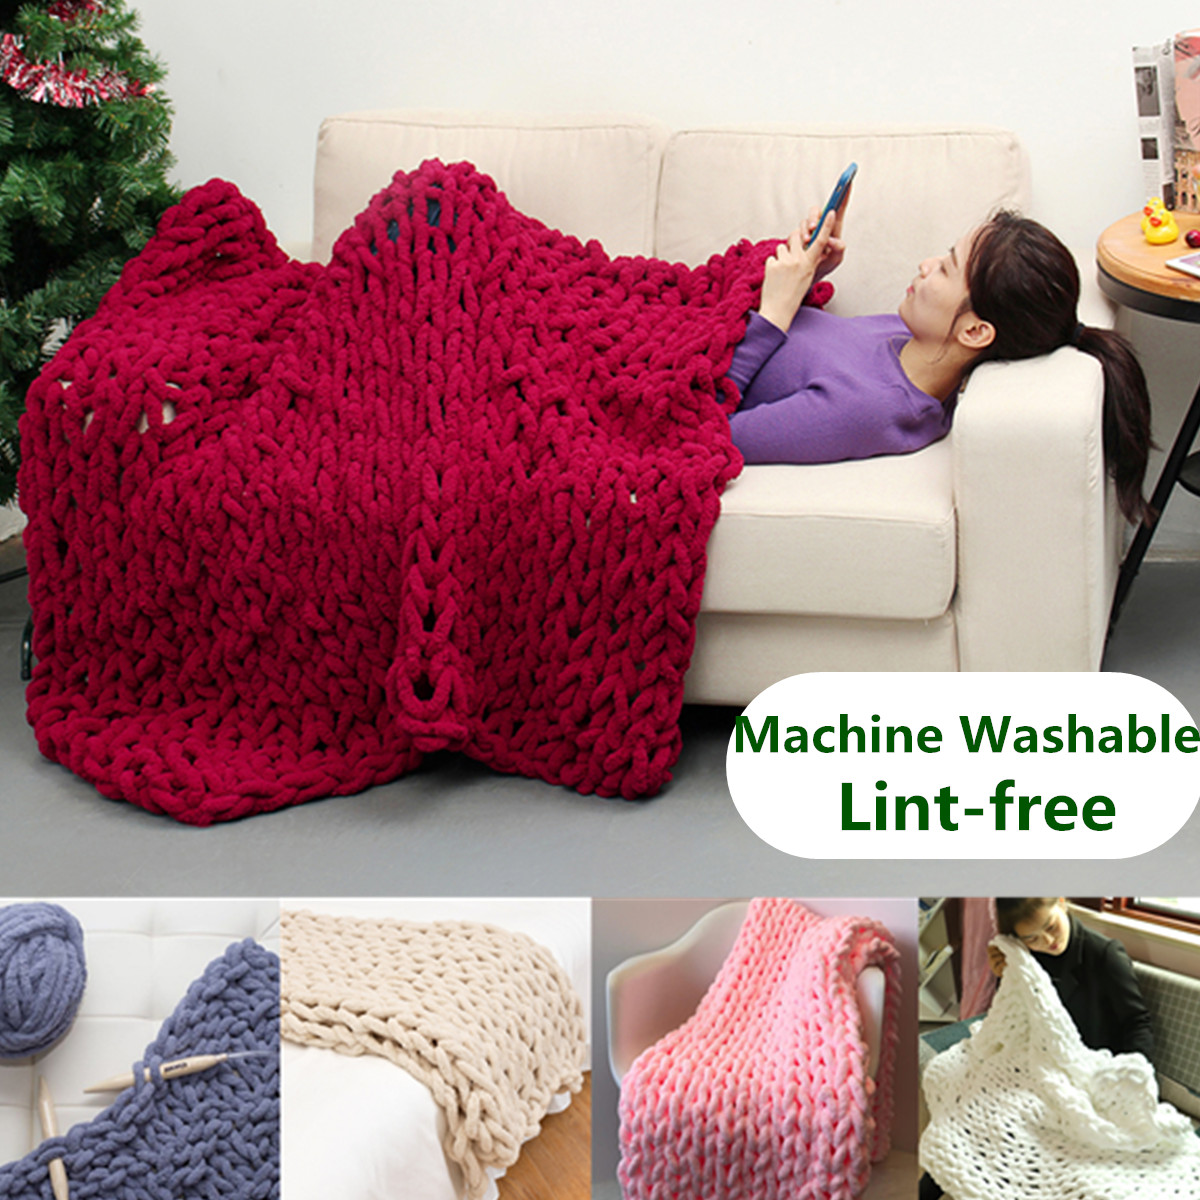 Washable Hand-woven Bulky Winter Warm Soft Chunky Knit Blanket Lint-free Thick Yarn Knitted Bedding Sofa Throw